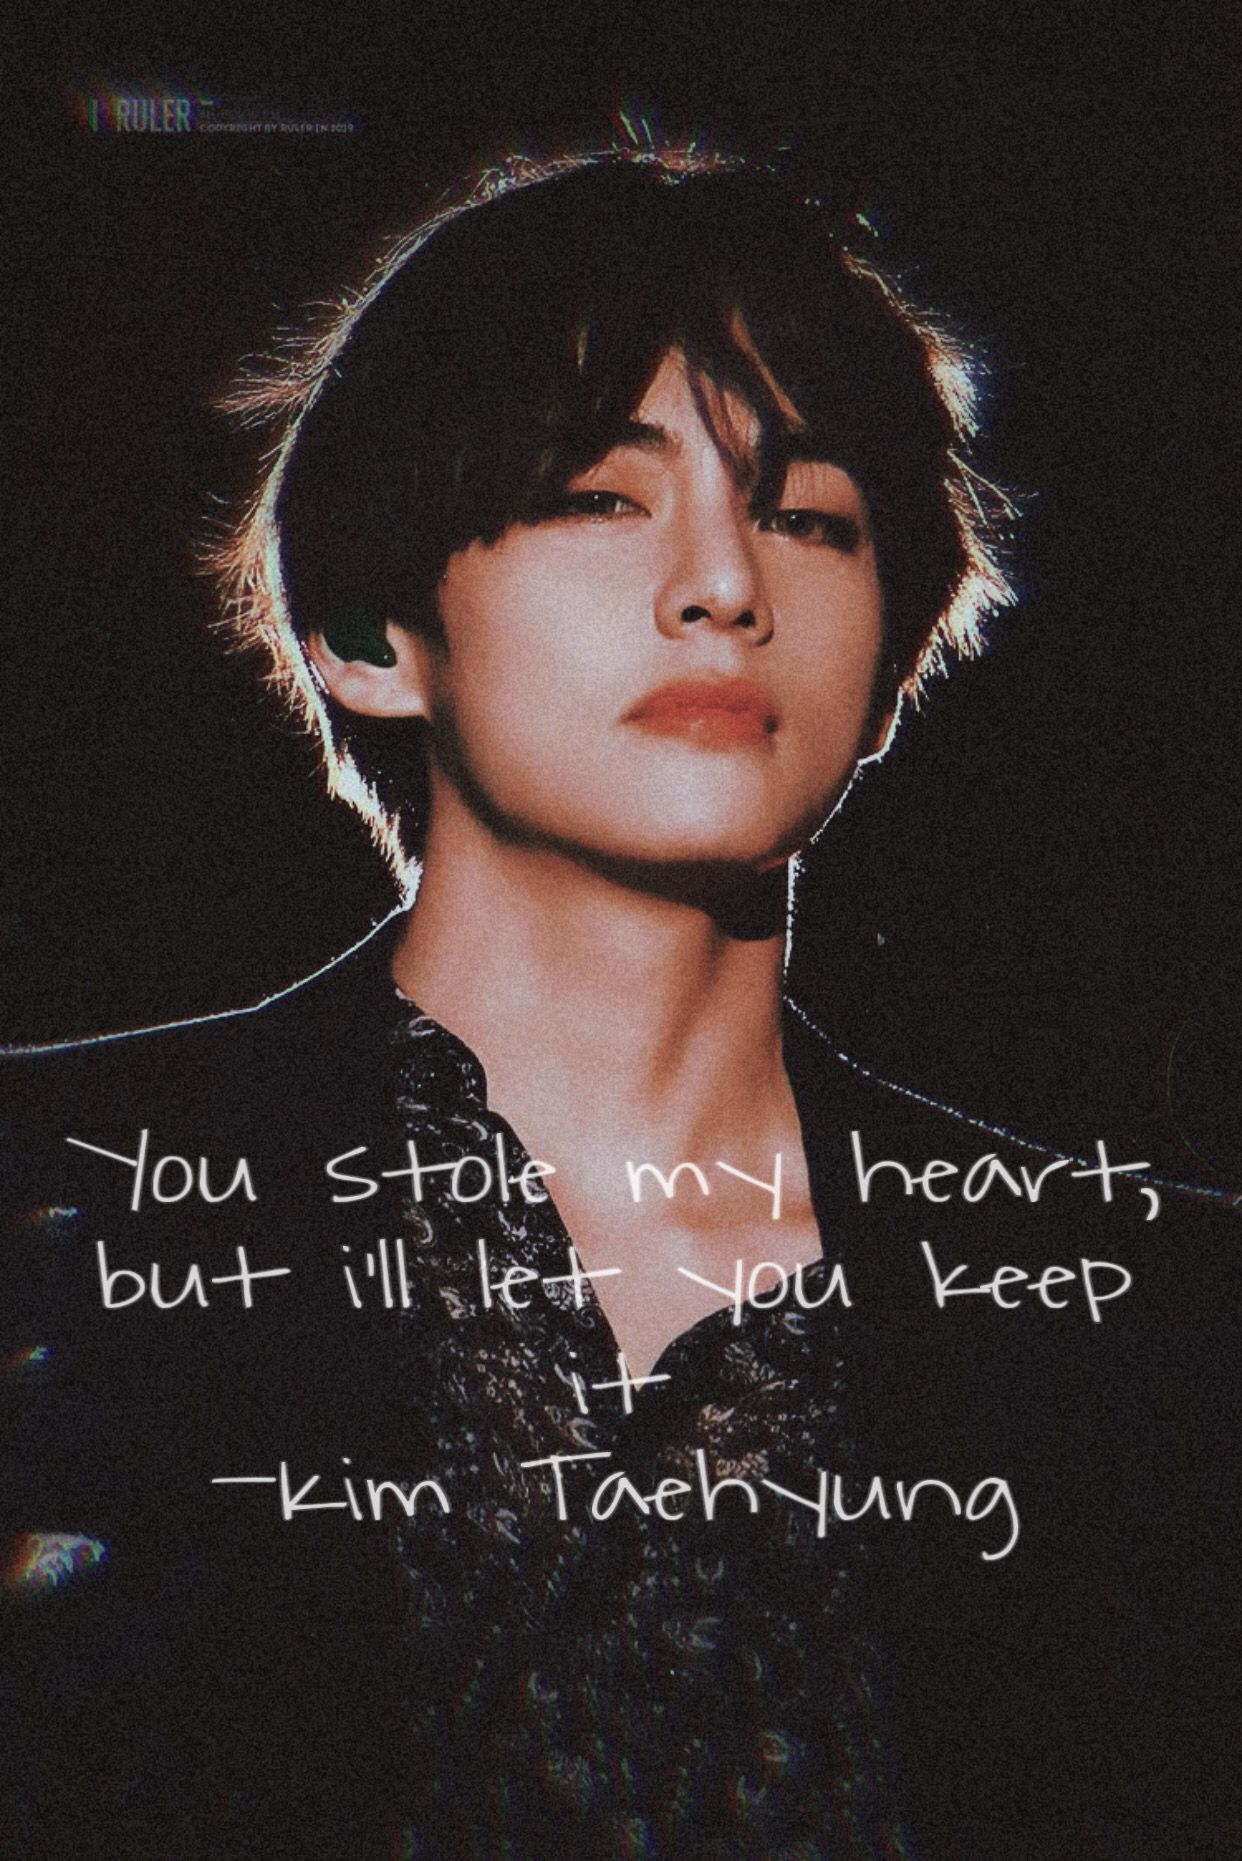 Awesome Kim Taehyung Savage Quotes wallpapers to download for free greenvirals